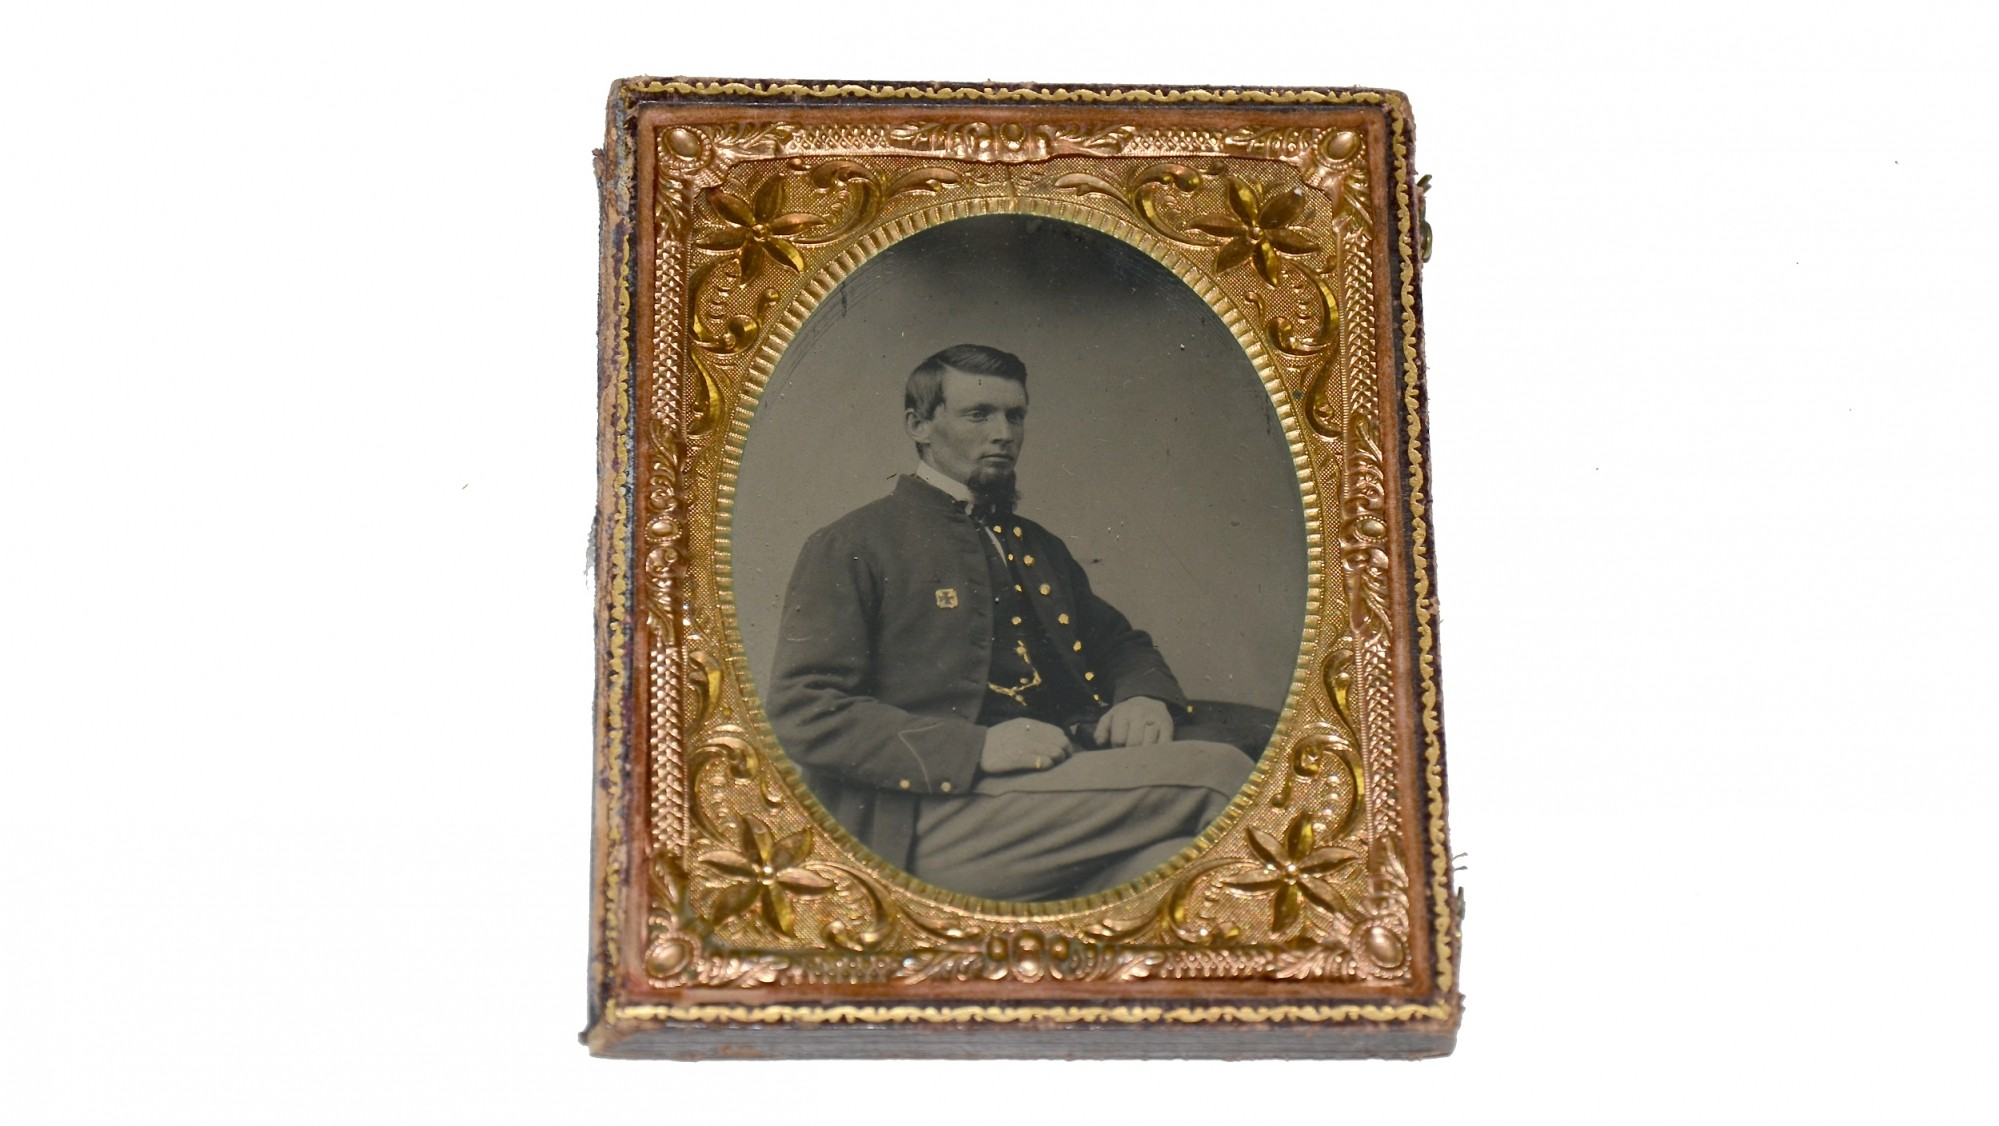 TINTYPE OF SOLDIER WEARING 5TH CORPS BADGE